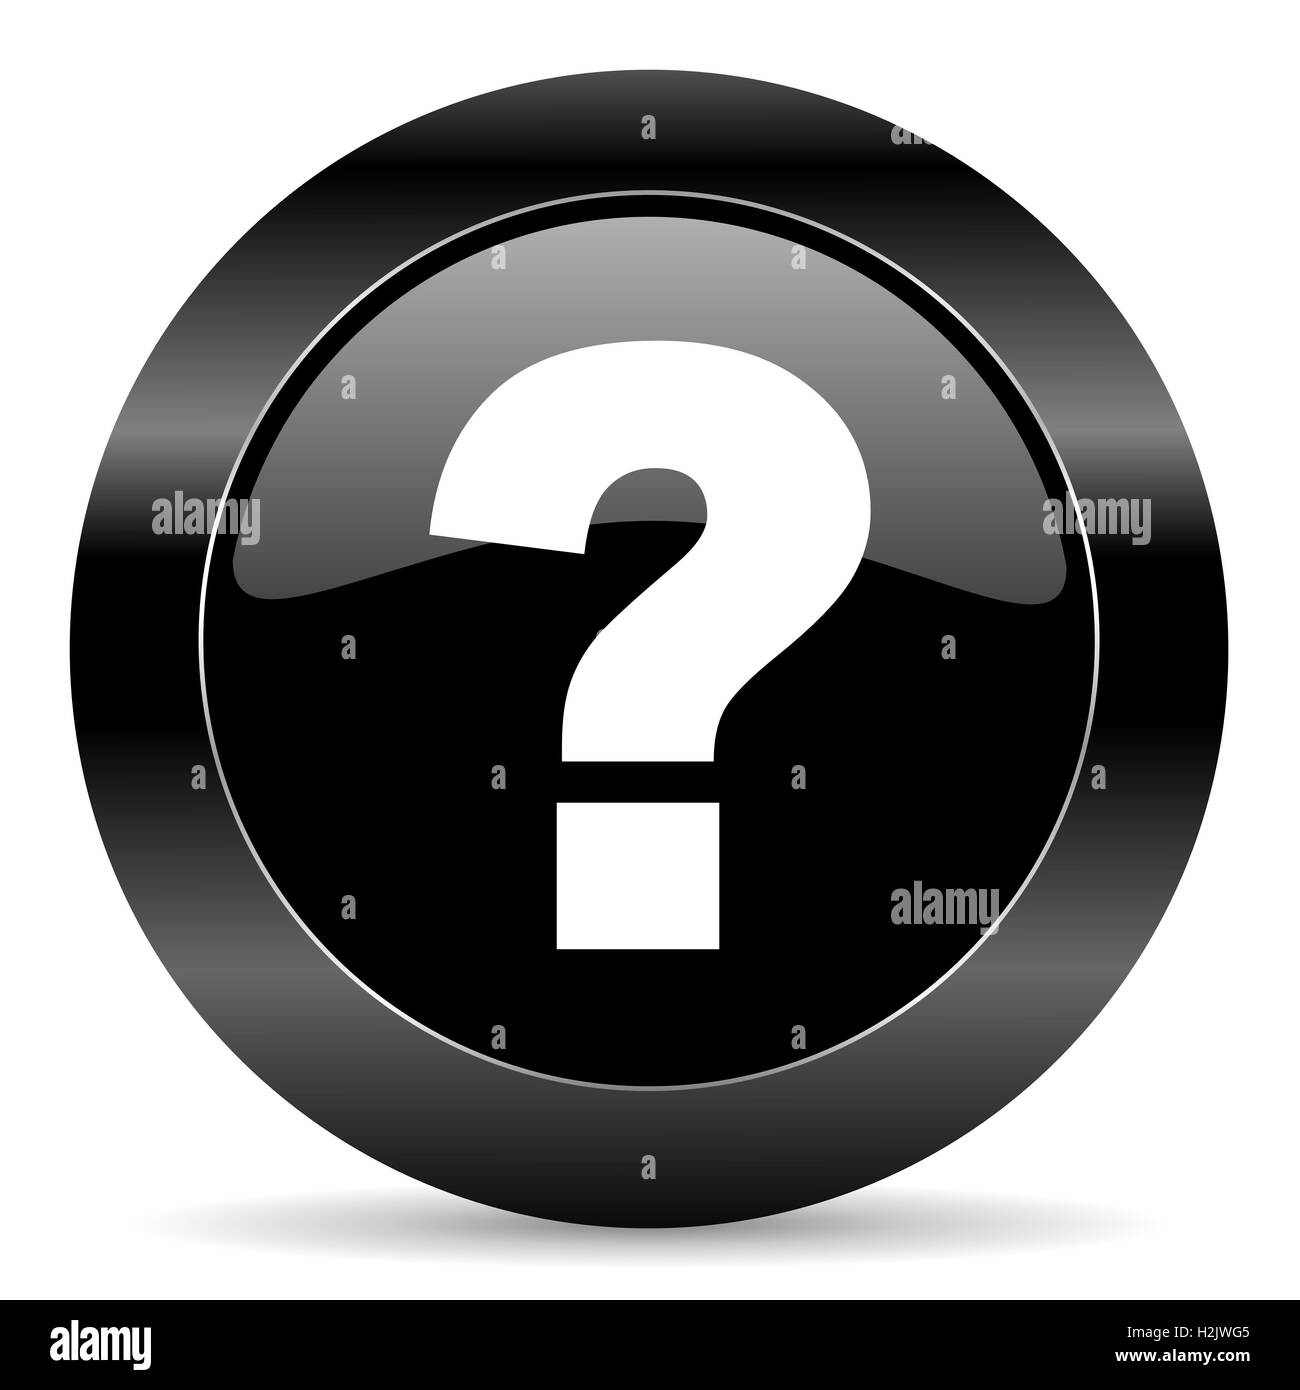 question mark icon - Stock Image